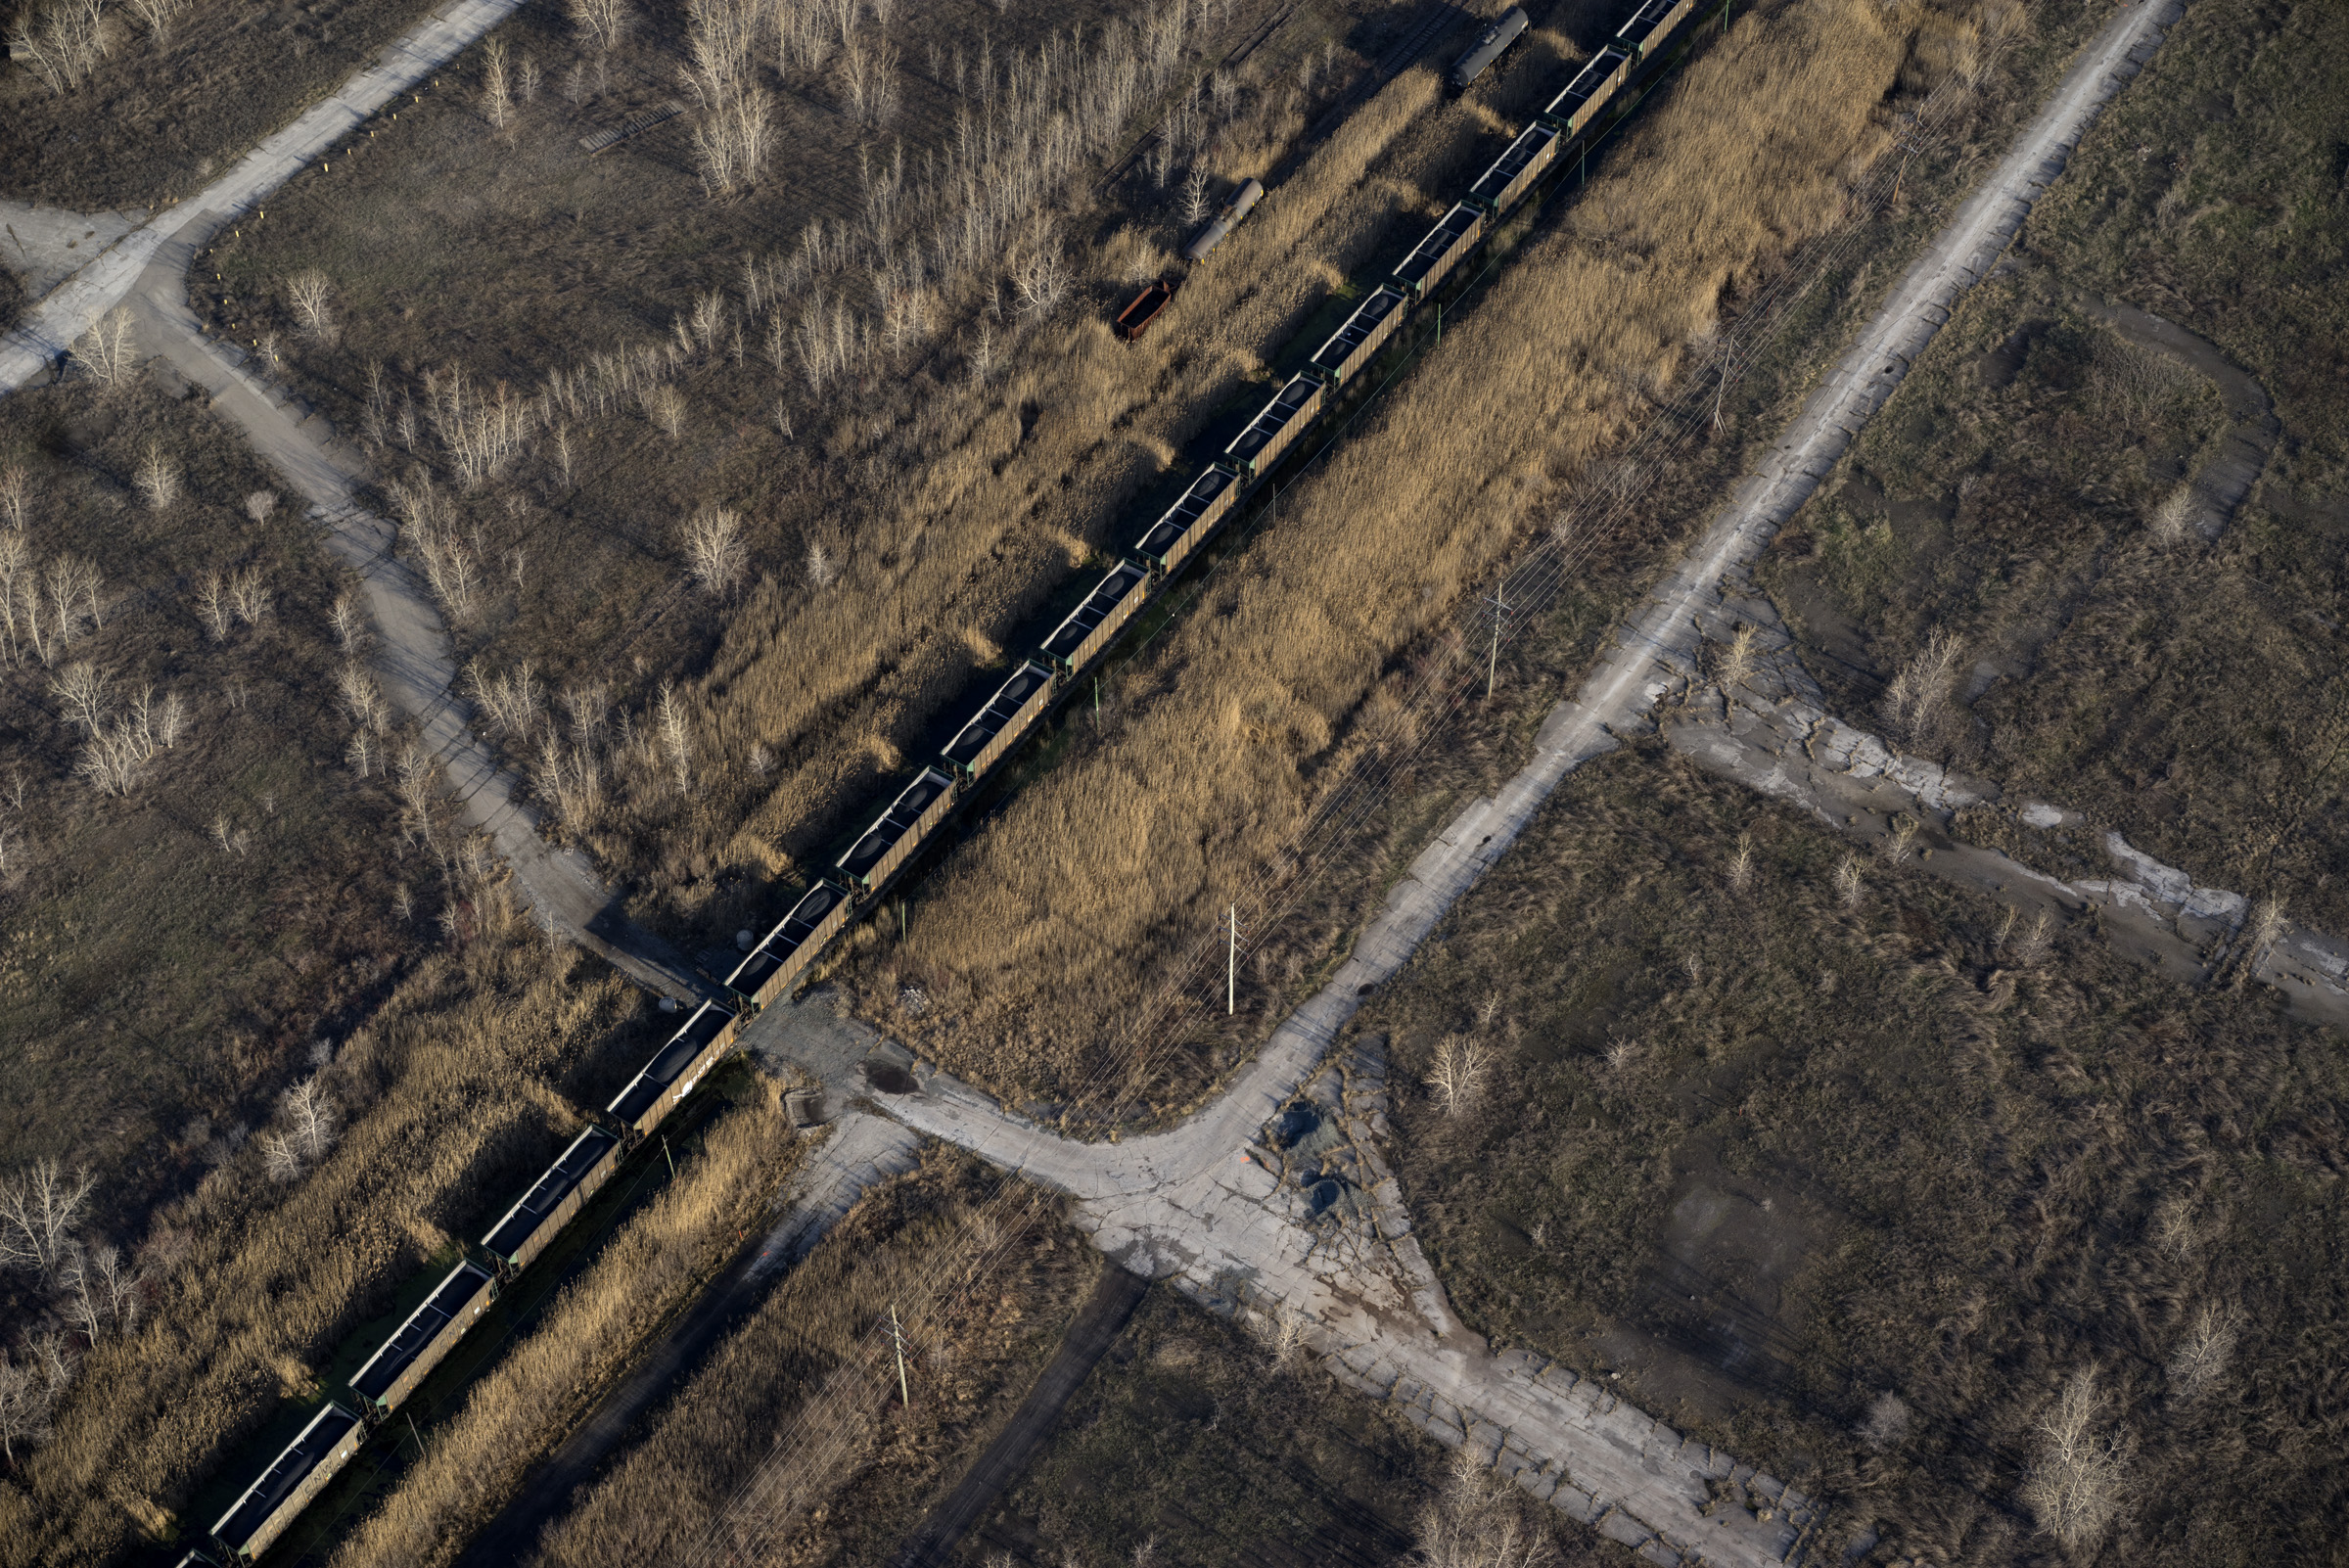 Petcoke filled train moving through a brownfield, former steel mill site, 2014. Terry Evans